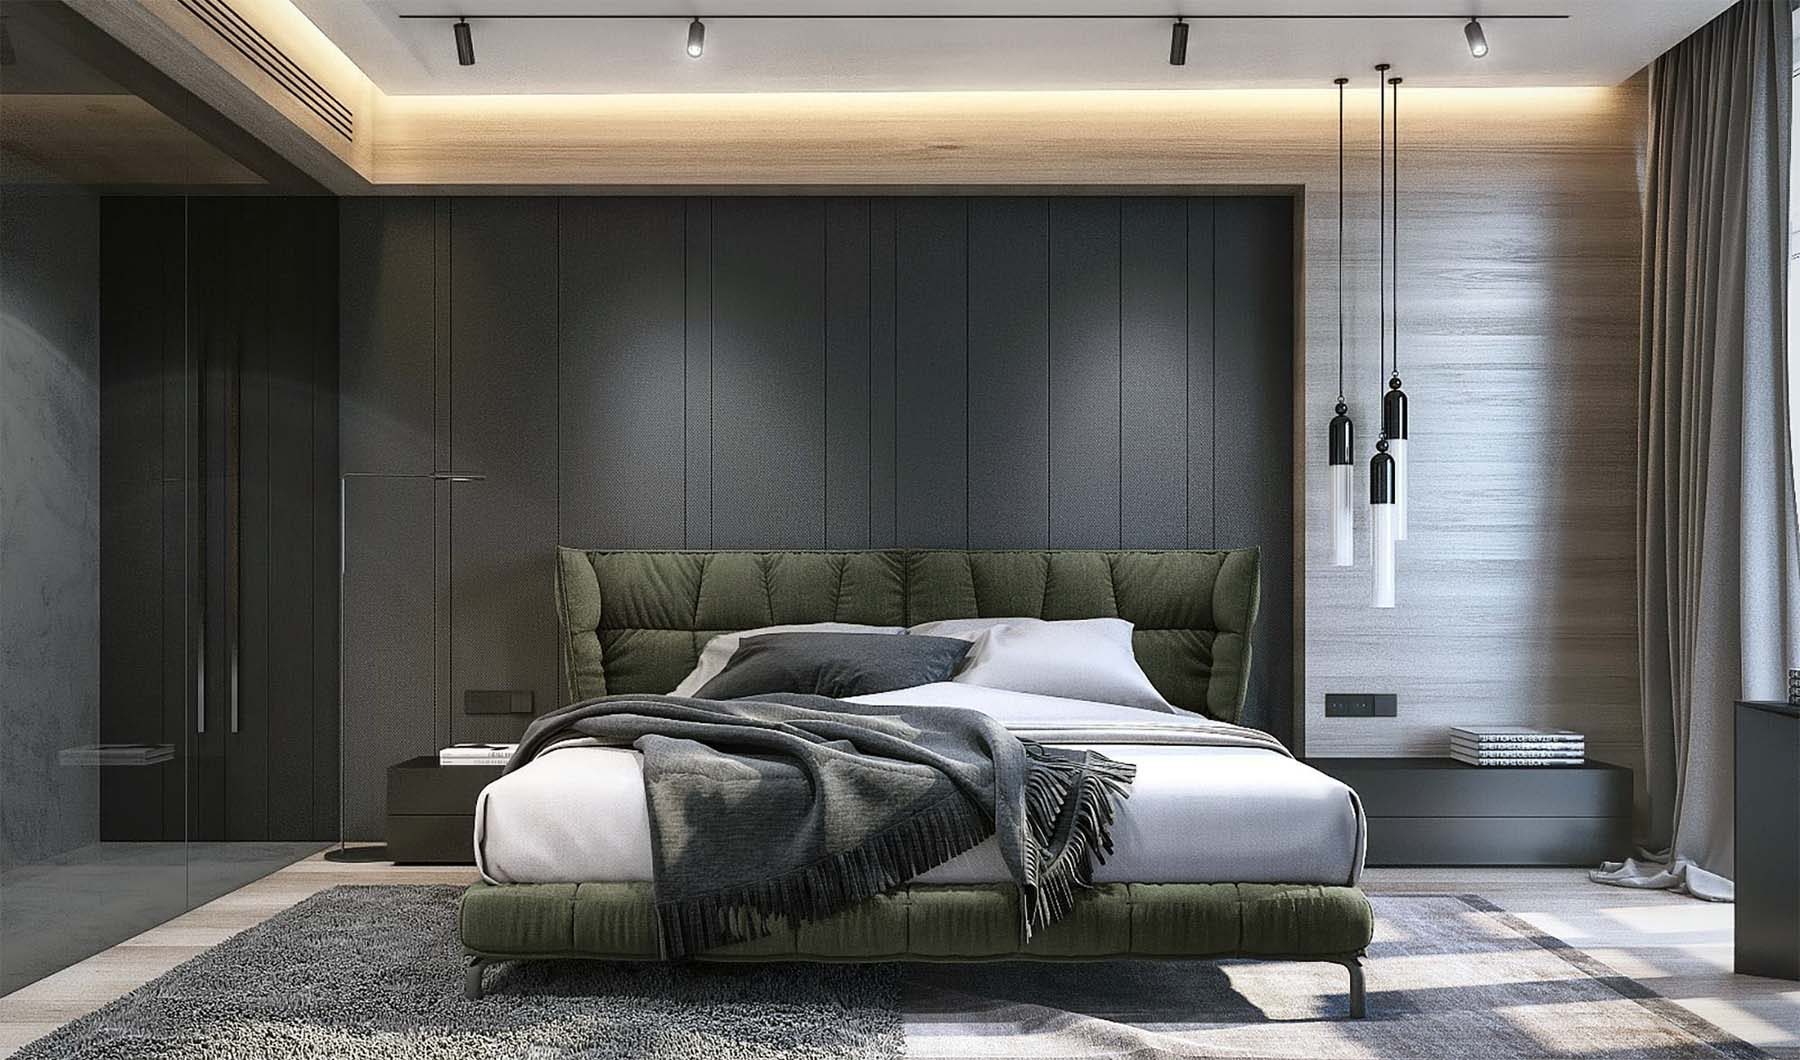 Master bedroom with a modern style and custom built wall paneling. Vertical gray paneling.